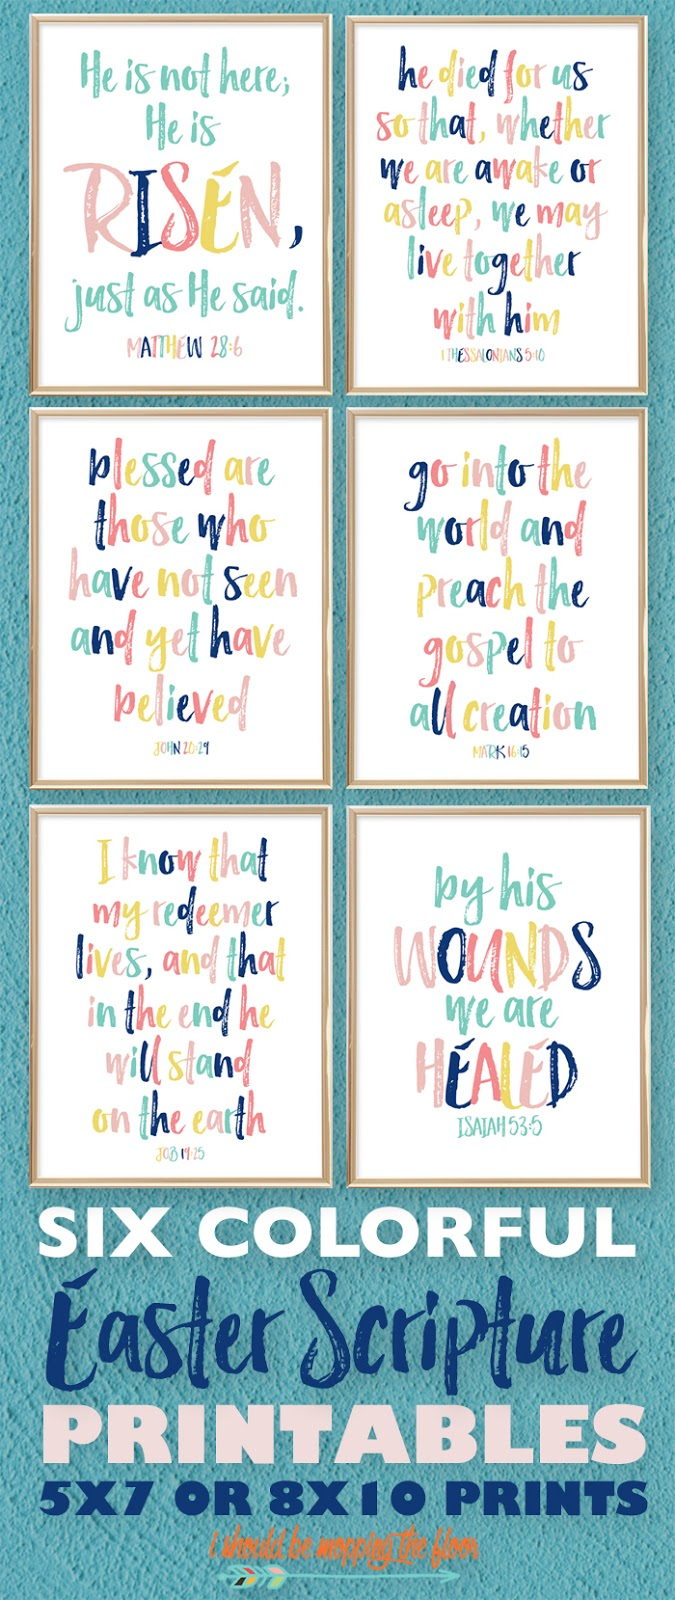 Bible Scripture Printables